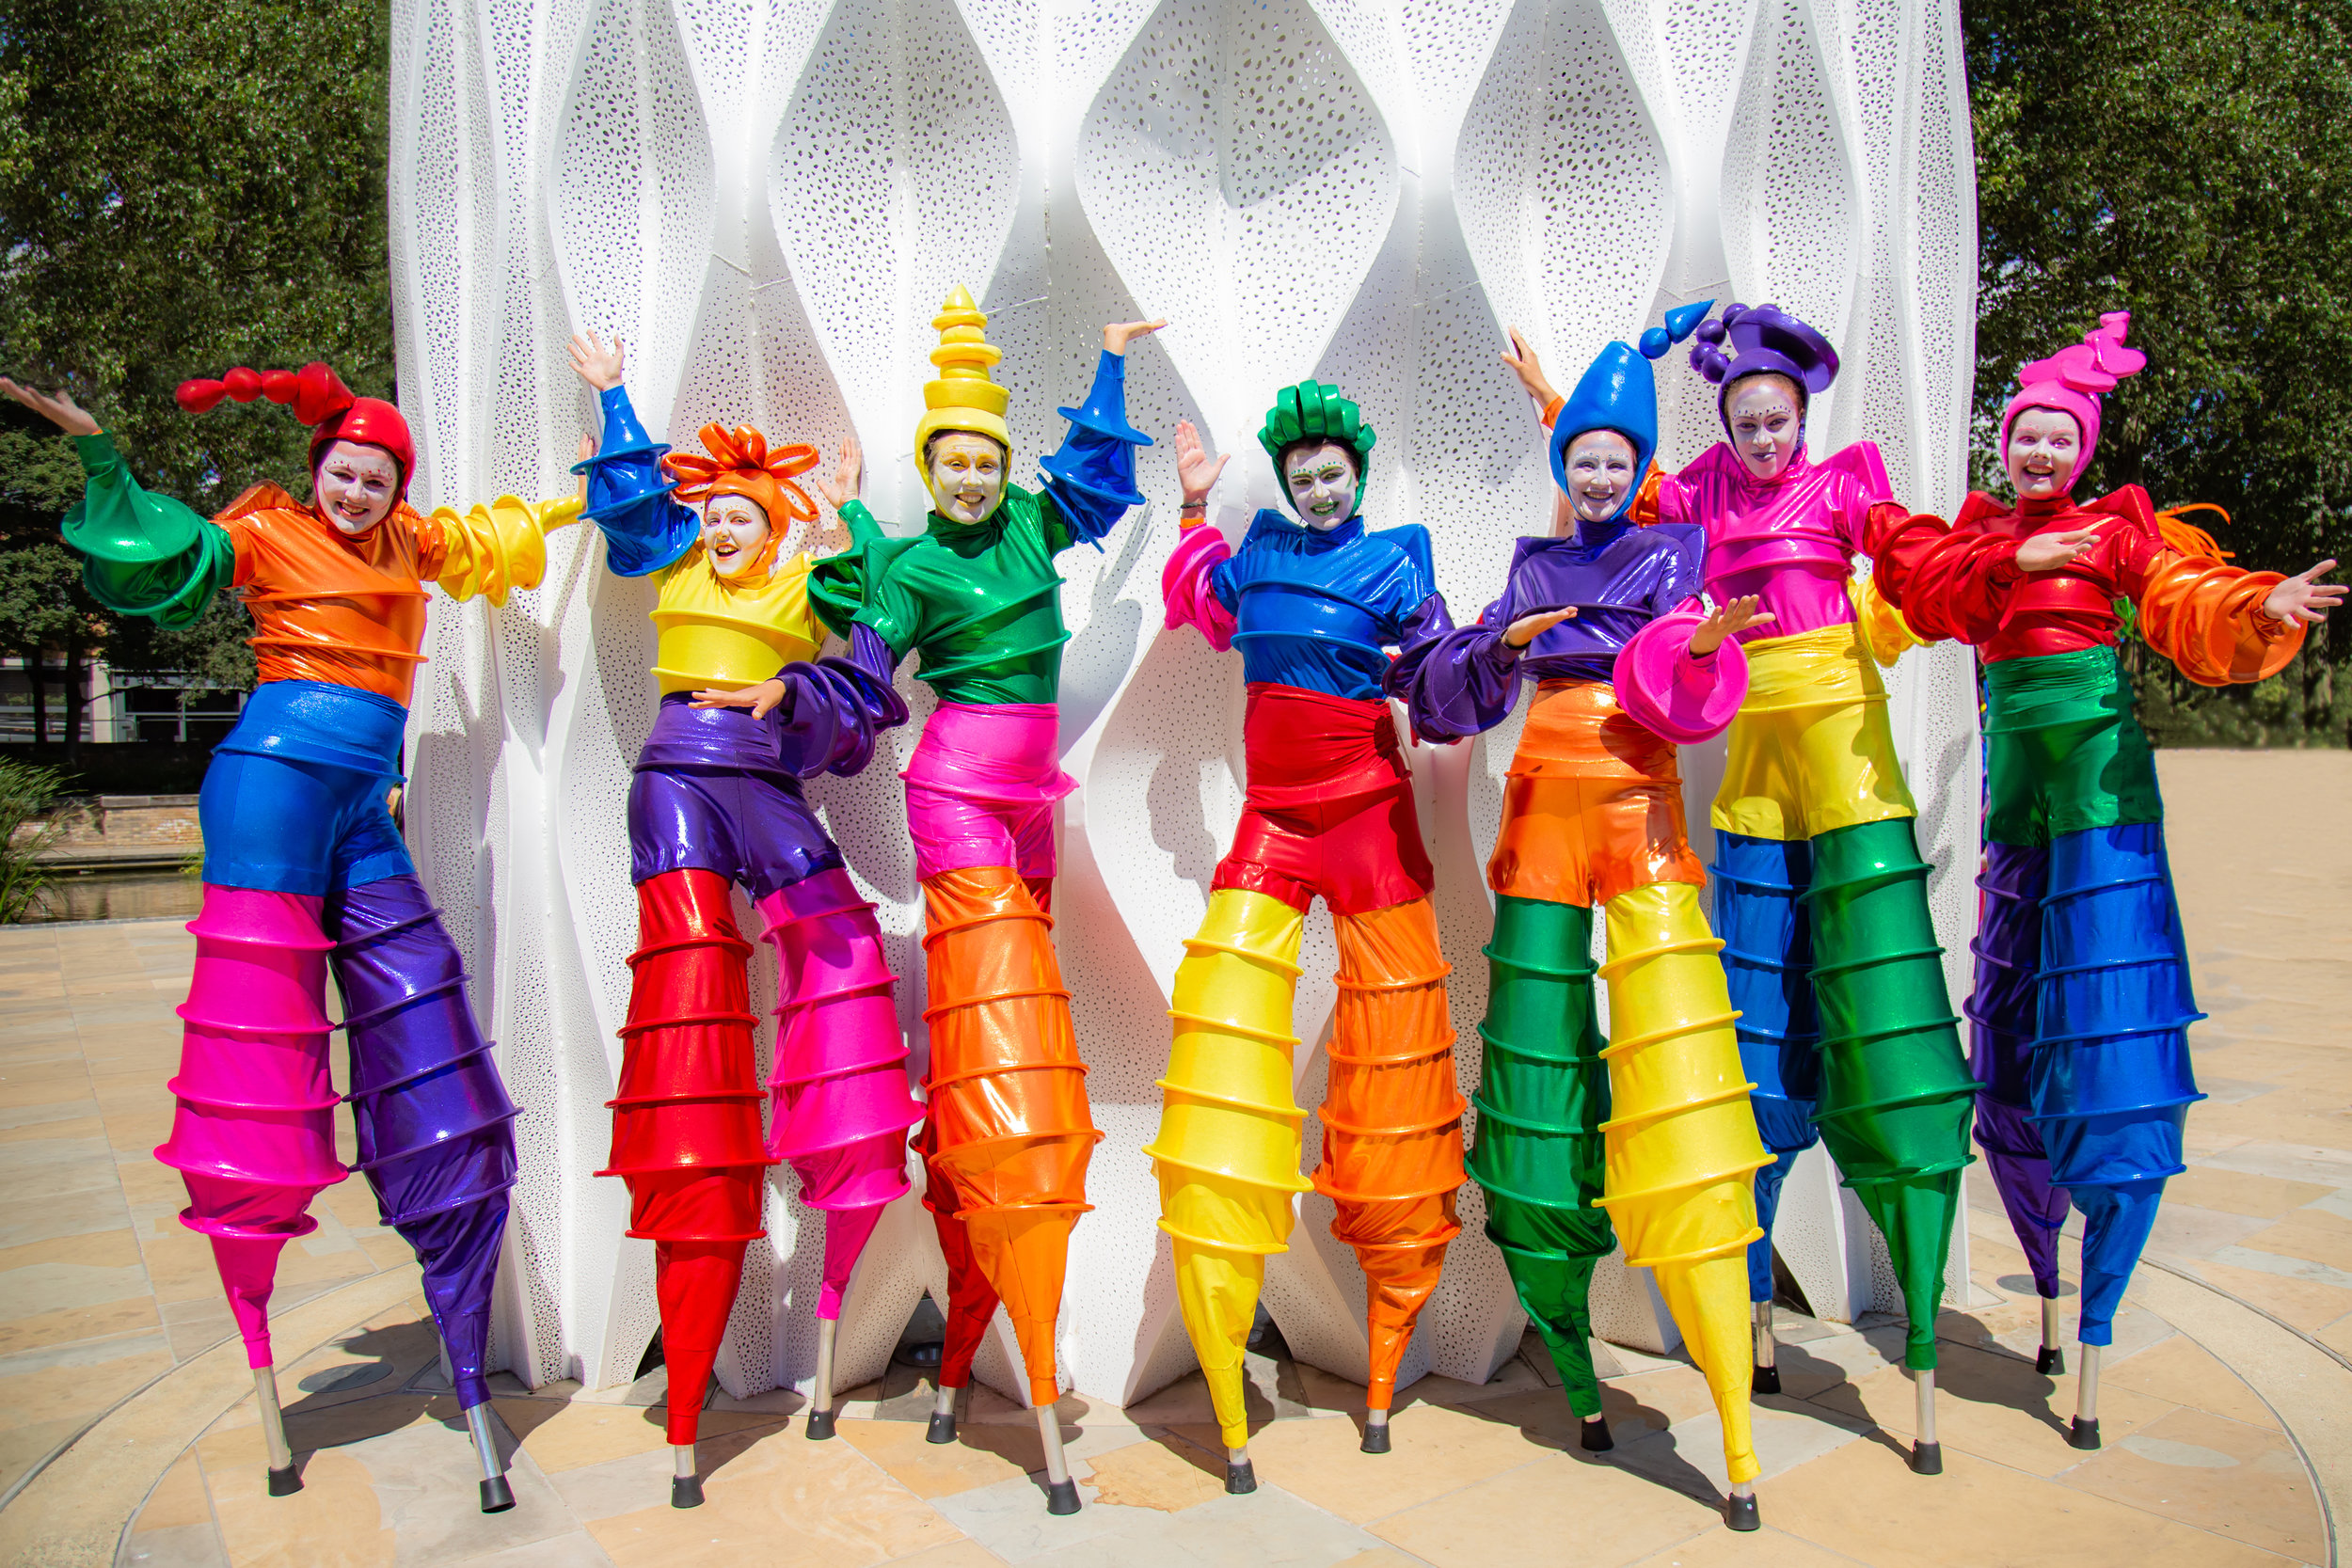 Rainbow_Carnival_Stilt_Dancers_Mixed_Colours_IMGL2527.jpg